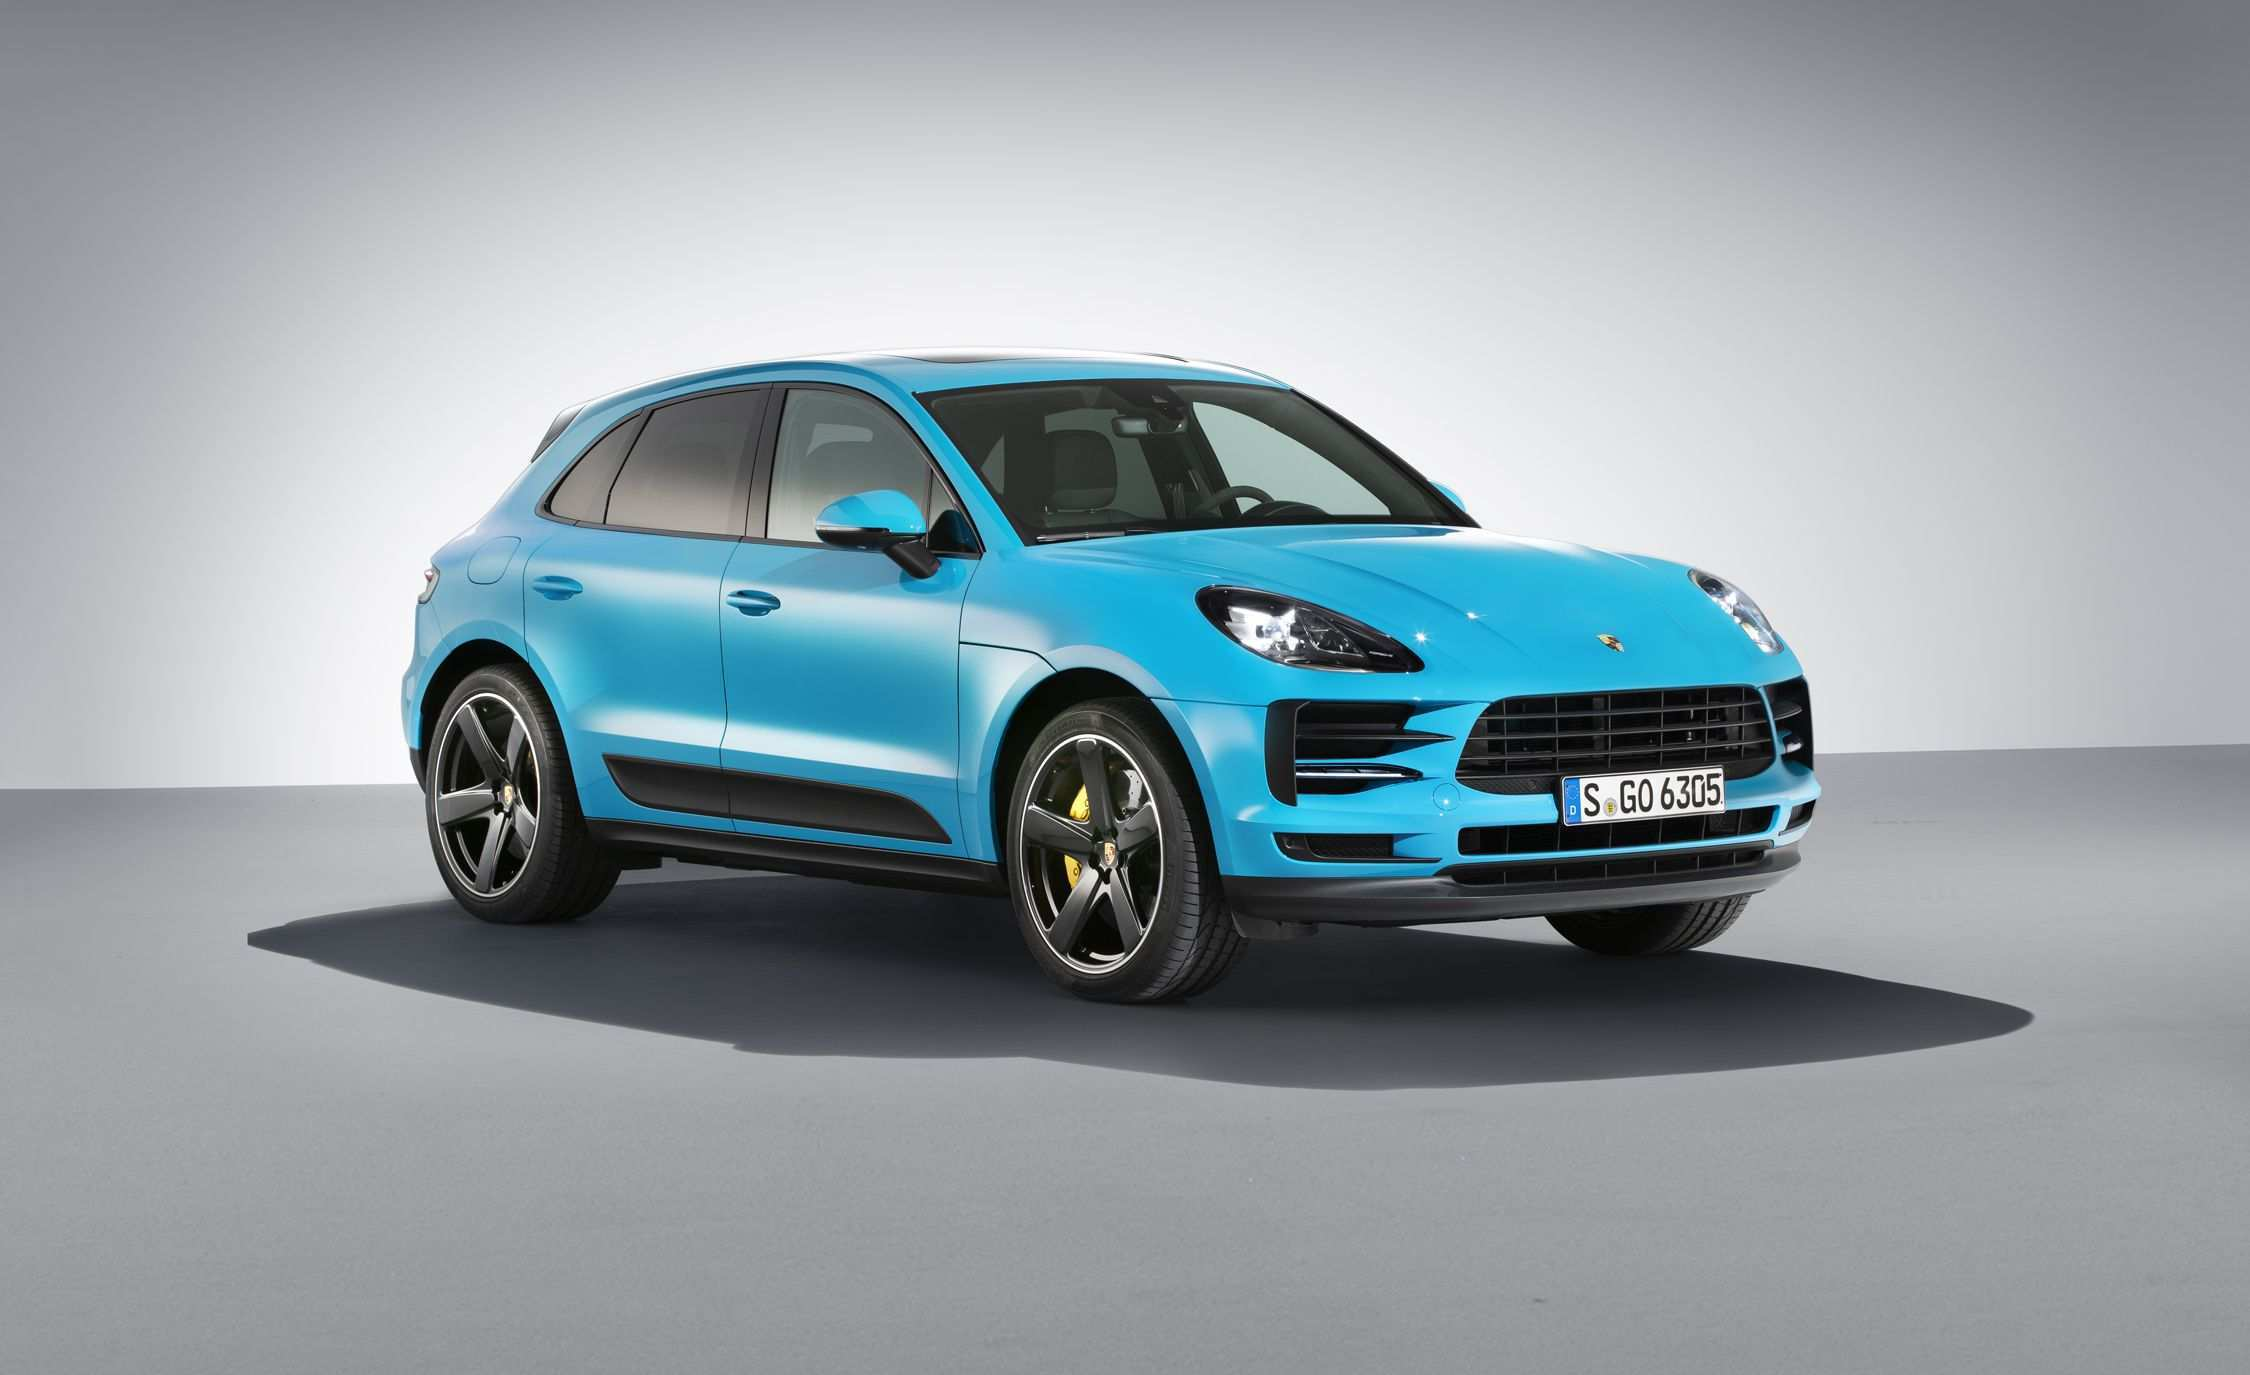 33 Concept of 2019 Porsche Macan Gts Redesign and Concept with 2019 Porsche Macan Gts